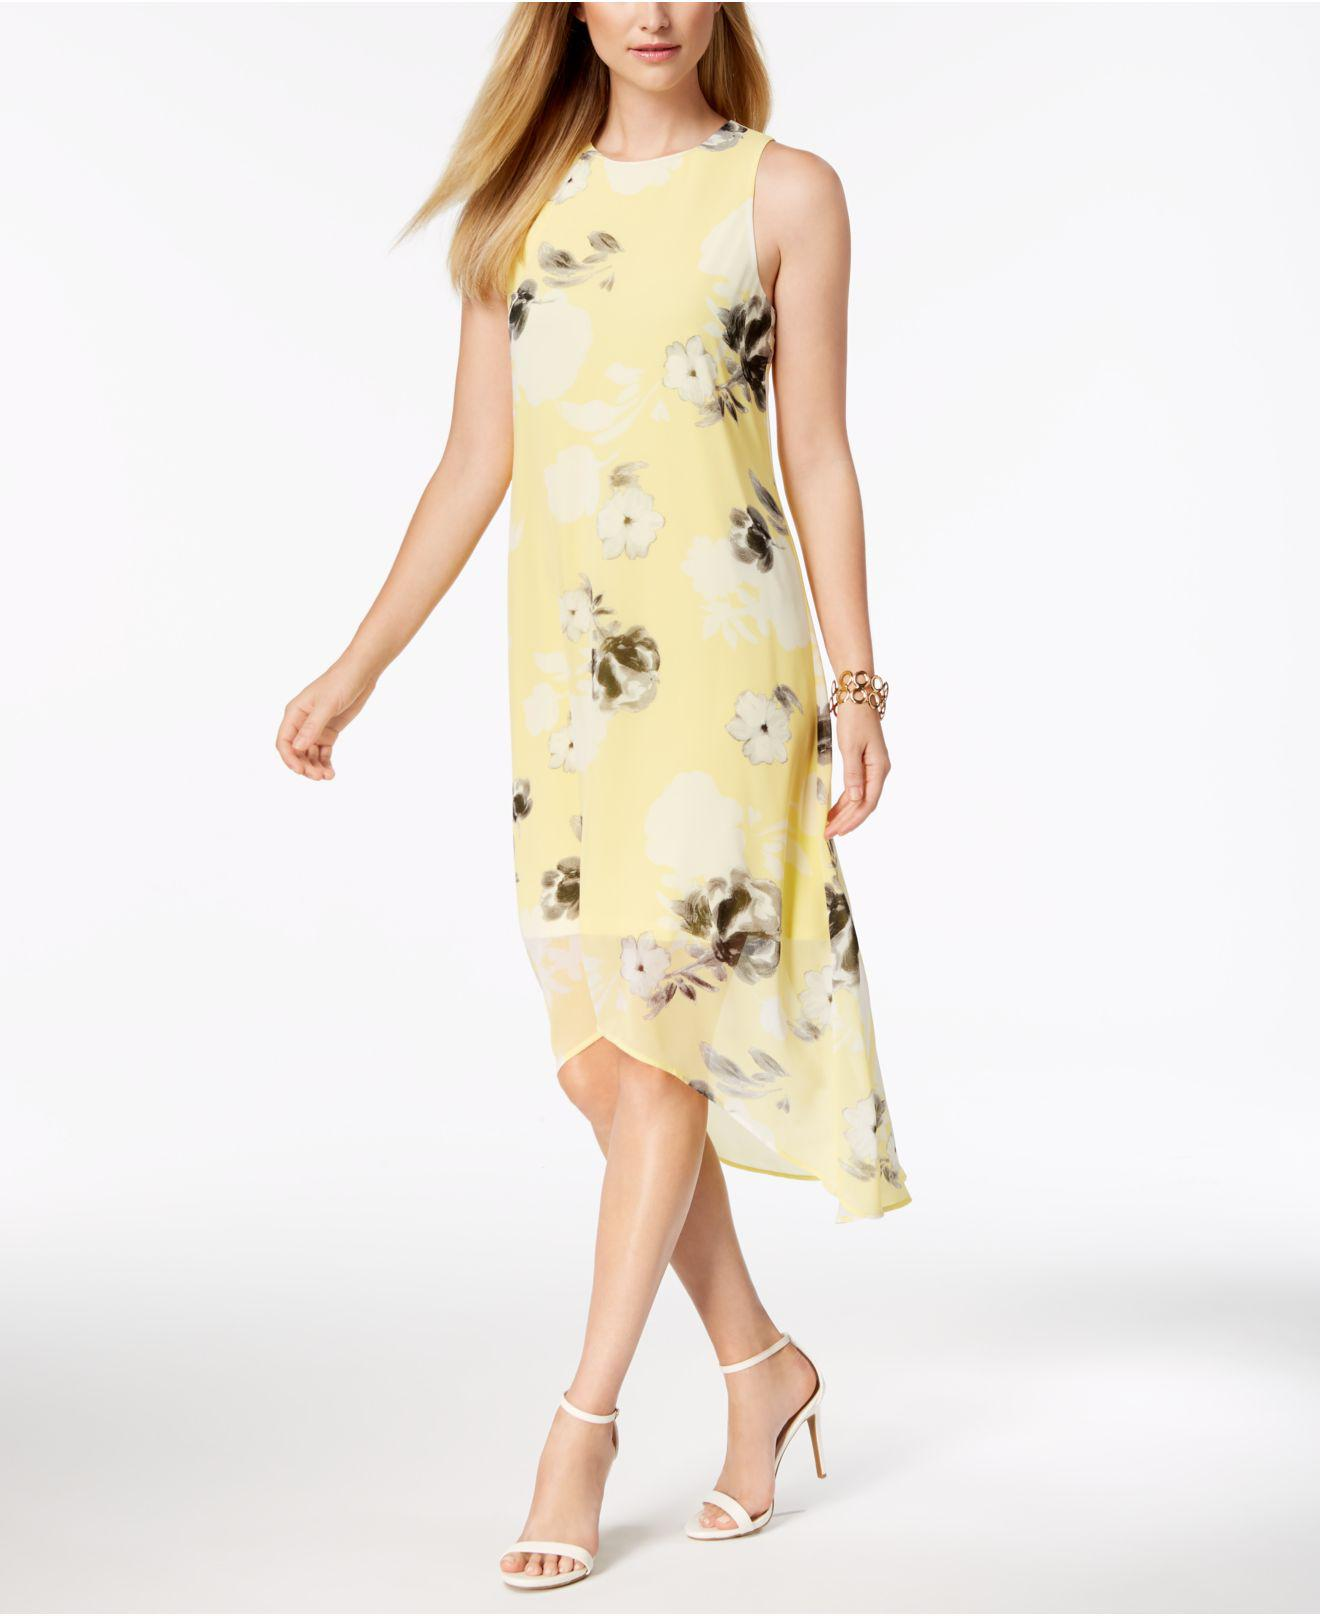 a8bad916a4d Gallery. Previously sold at  Macy s · Women s High Low Dresses